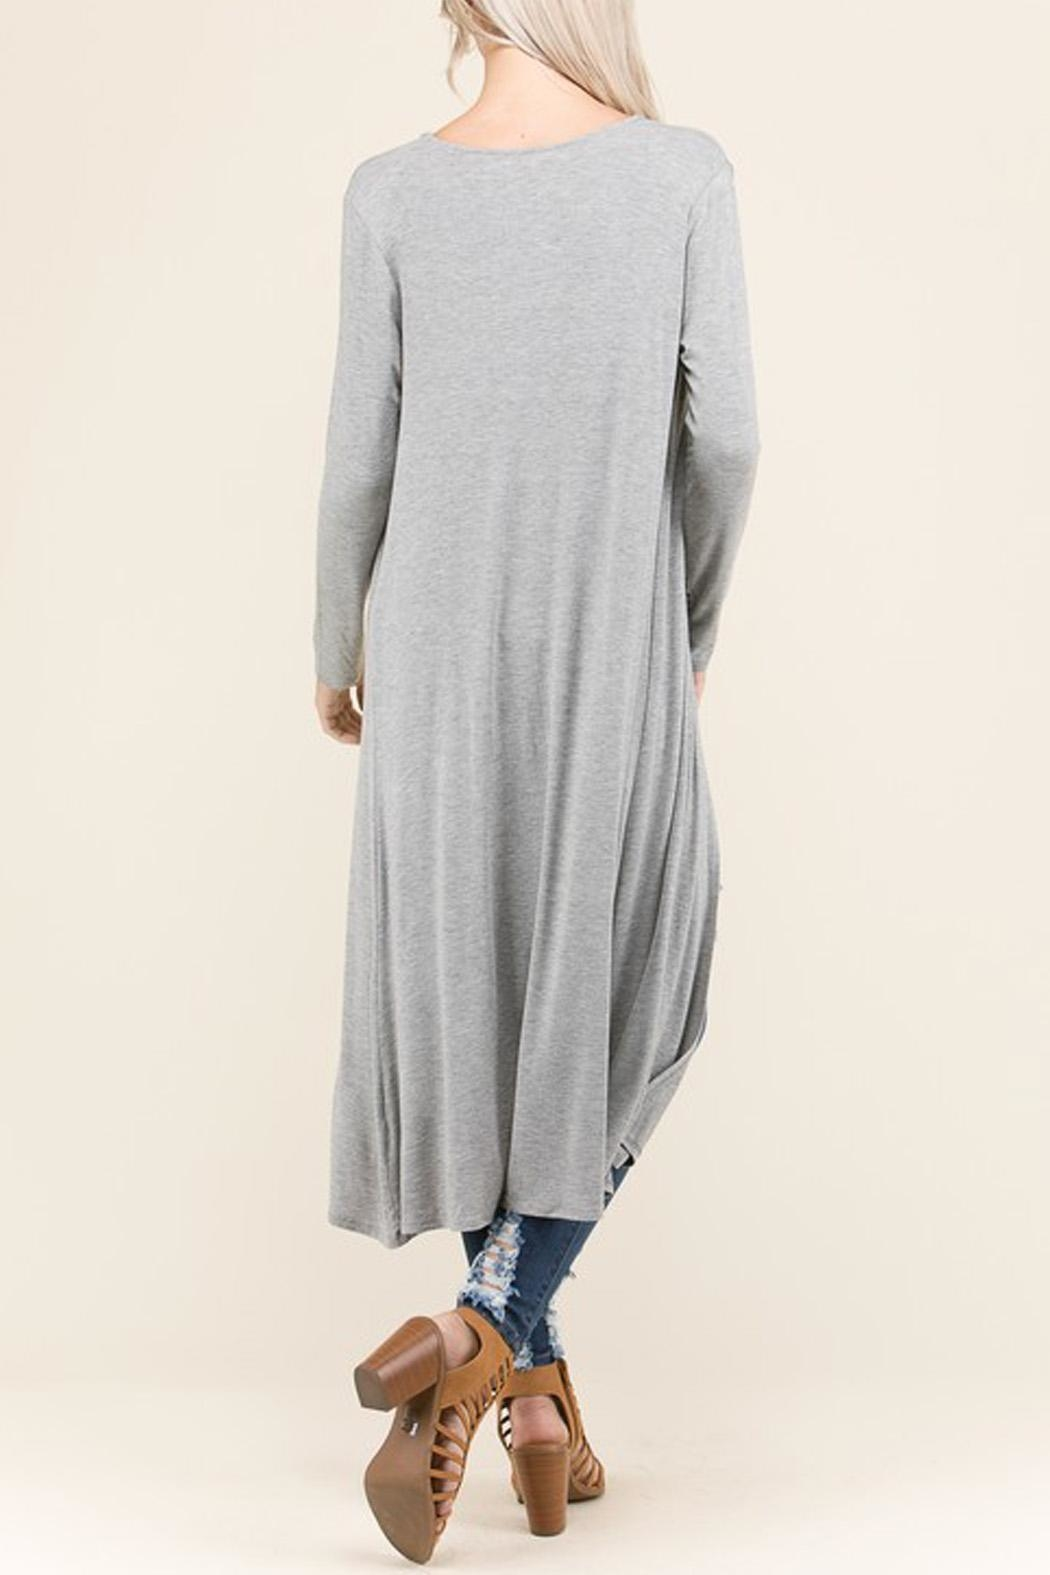 Wild Lilies Jewelry  Gray Long Cardigan - Main Image